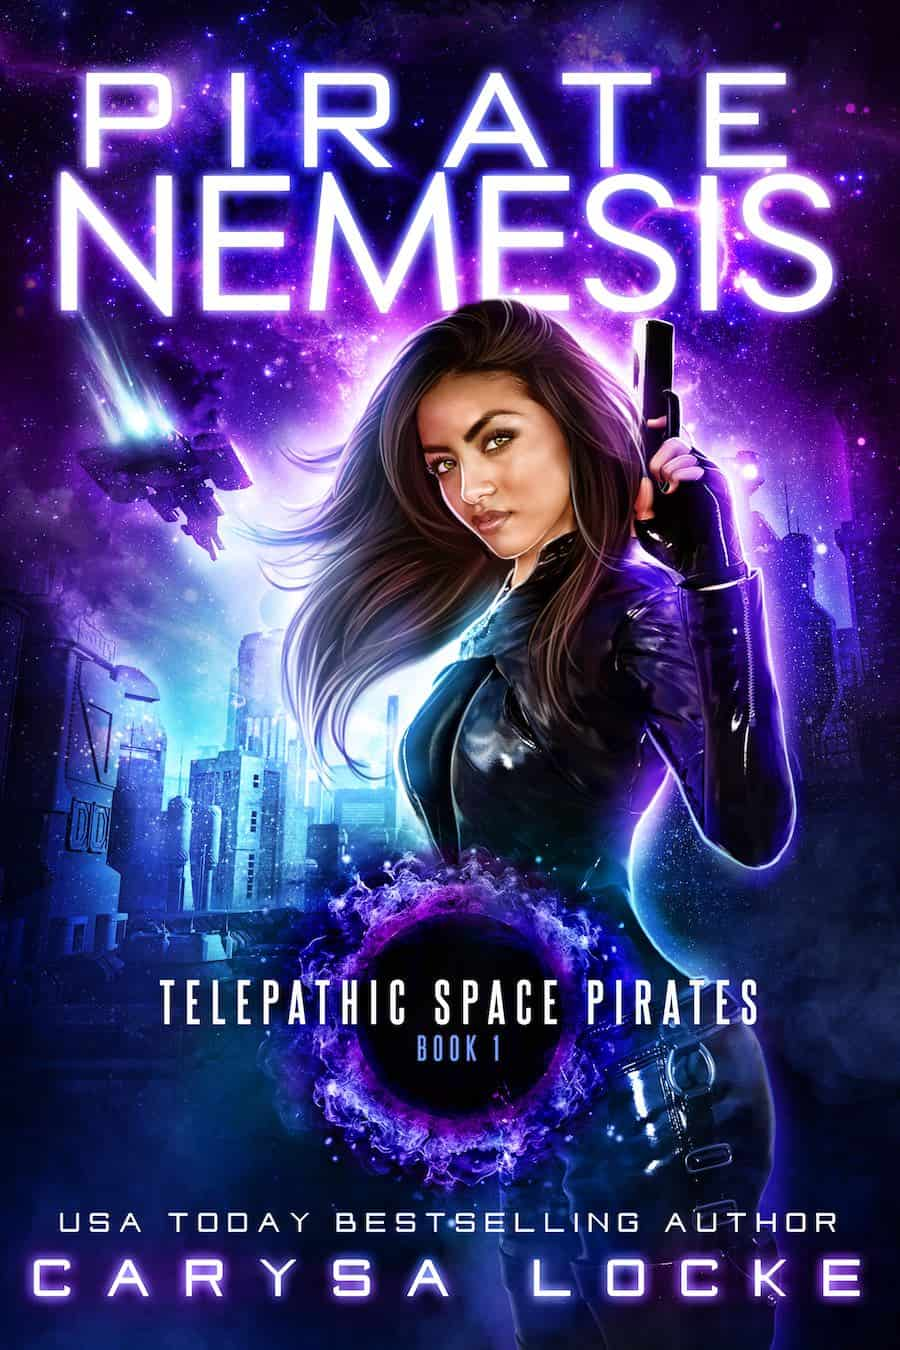 """Check out this exciting science fiction novel, PIRATE NEMESIS, by Carysa Locke. """"Killers. Thieves. Pirates. Family..."""""""